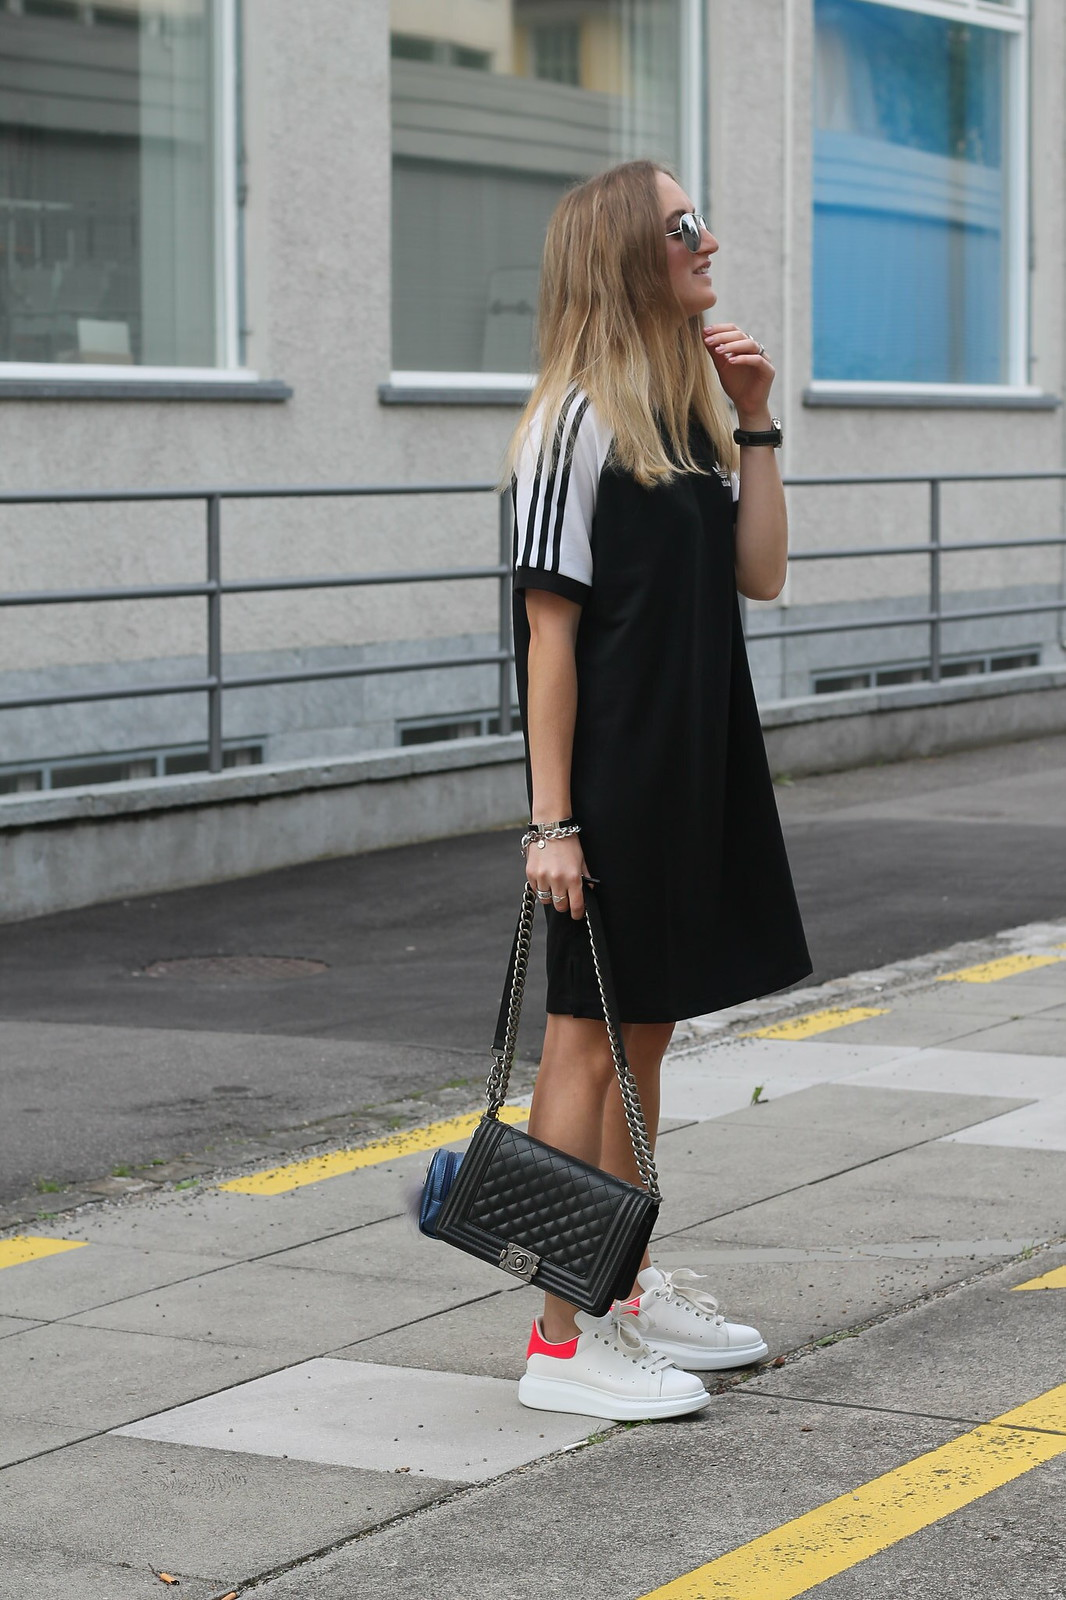 adidas-dress-and-alexander-mc-queen-sneaker-whole-outfit-with-sunnies-wiebkembg